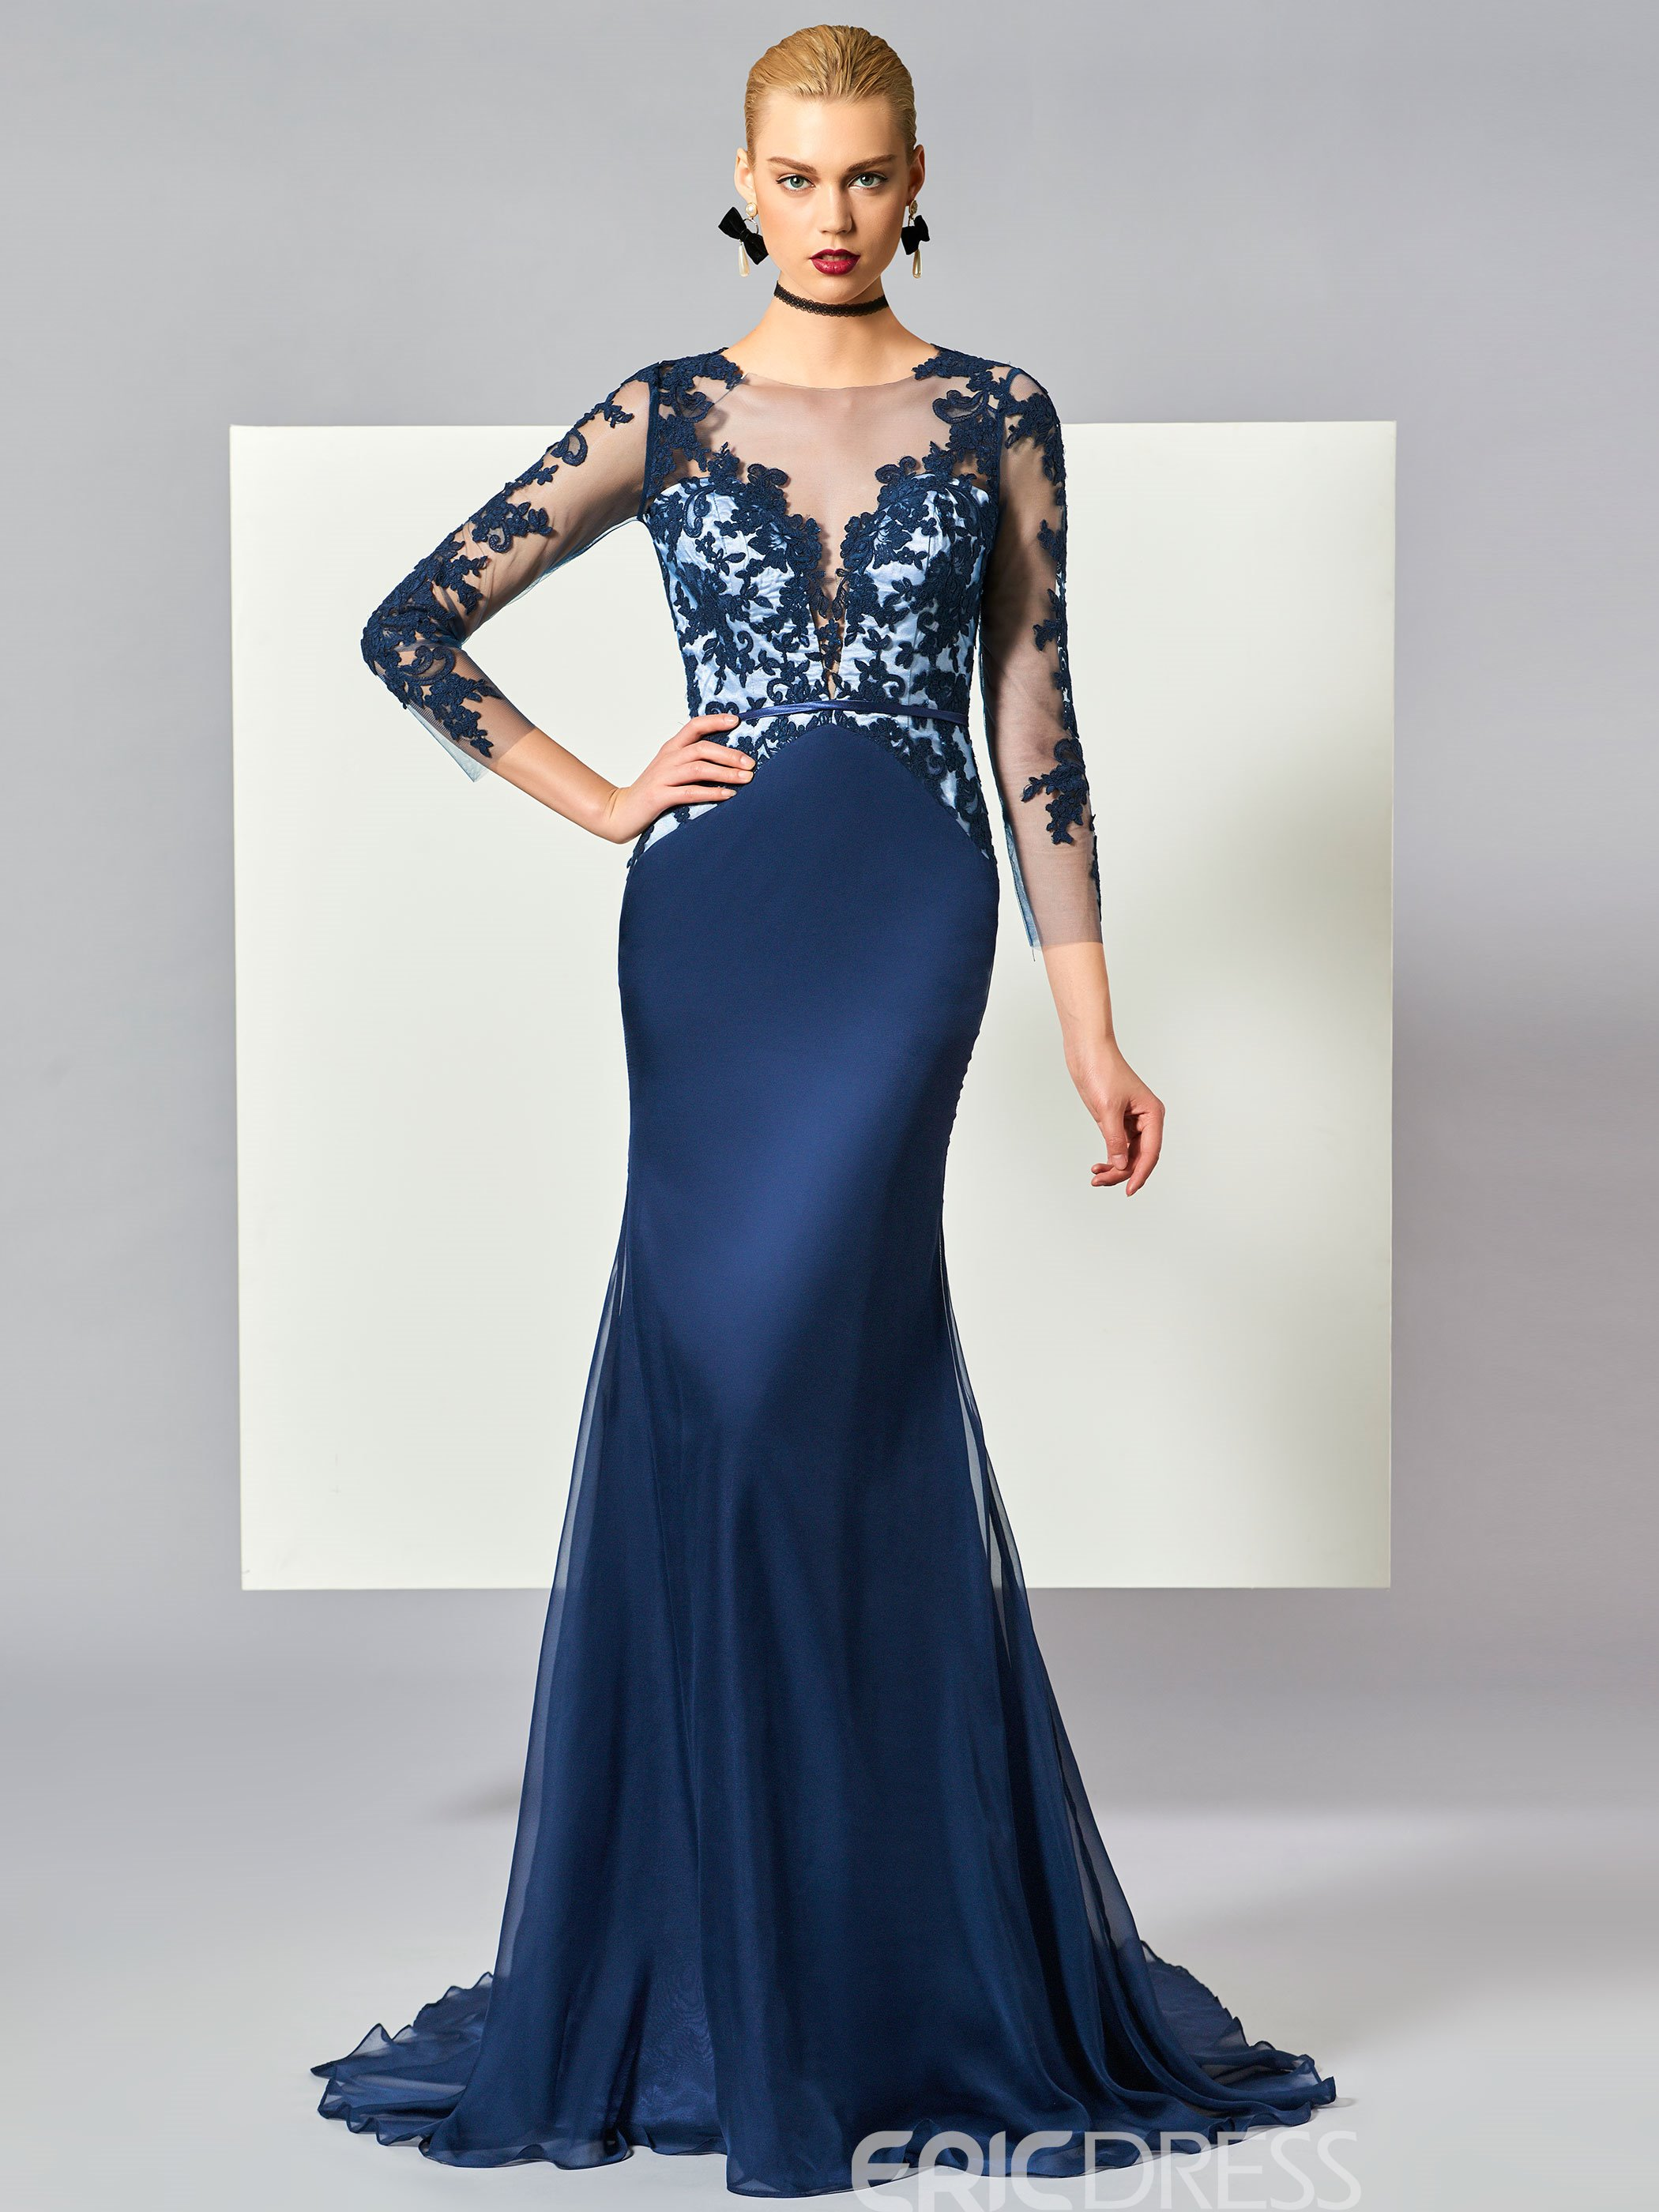 Ericdress Scoop Neck 3/4 Sleeve Lace Applique Mermaid Evening Dress With Sweep Train